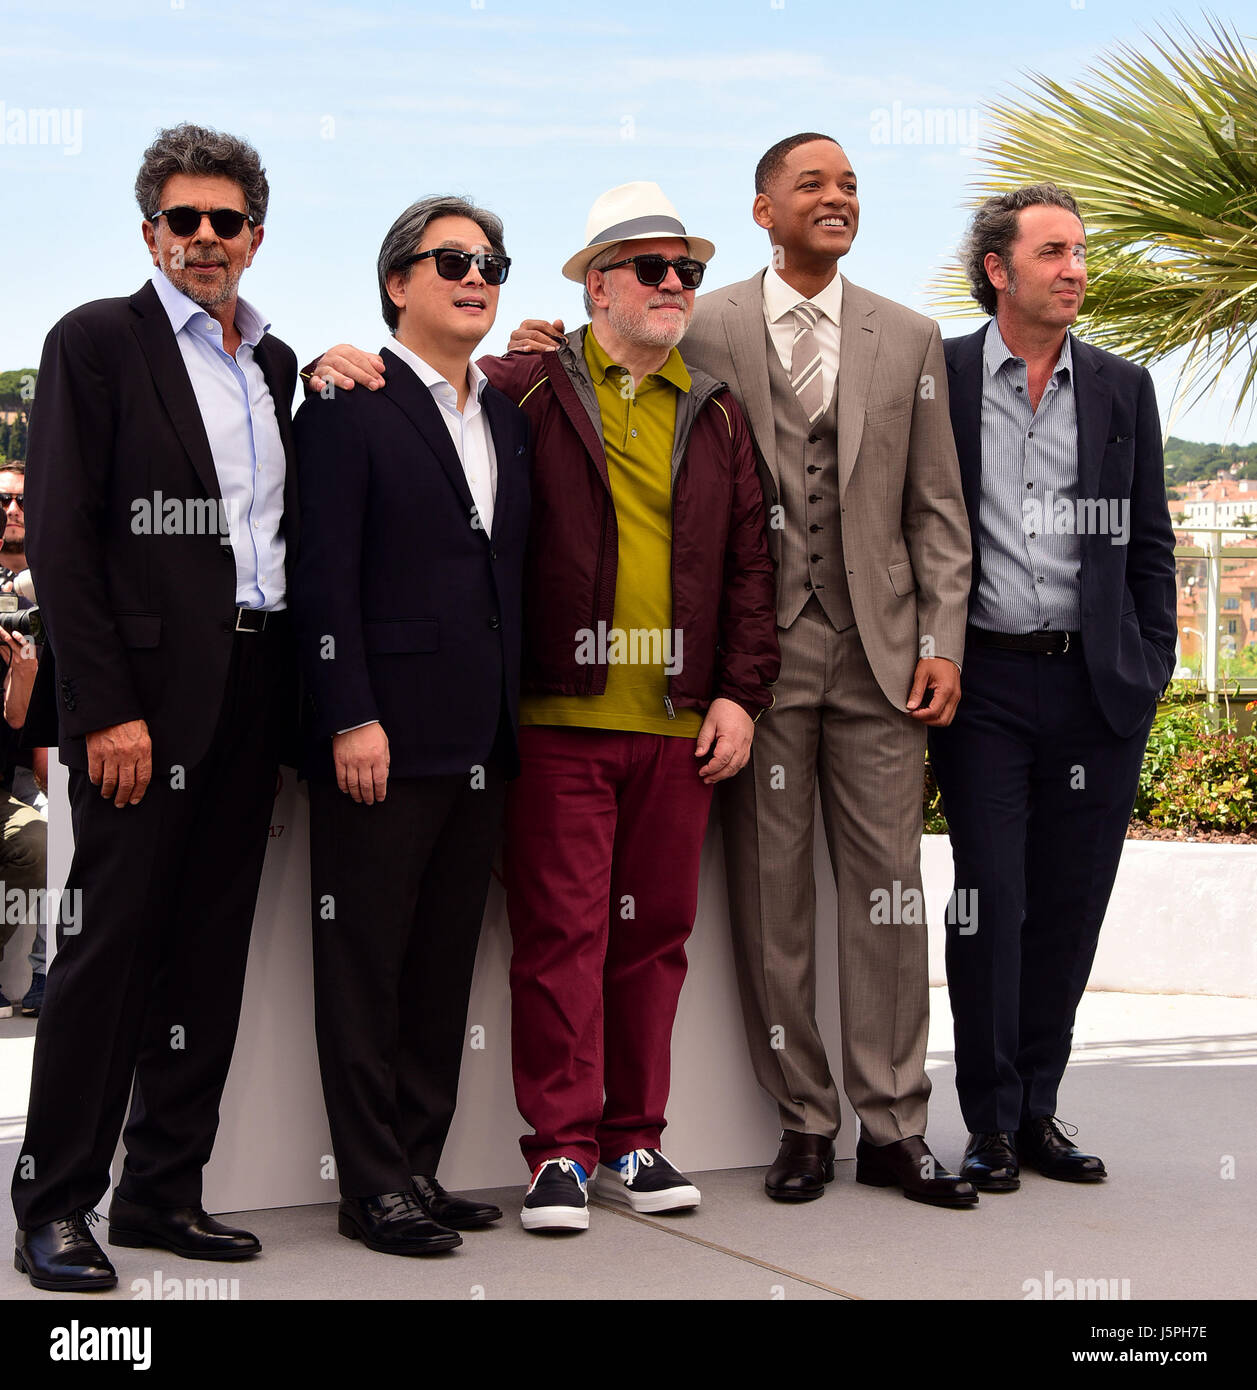 Cannes, France. 17 mai, 2017. Gabiel Yared, Park Chan-Wook, Pedro Almodovar, Will Smith, Paolo Sorrentino participant Photo Stock